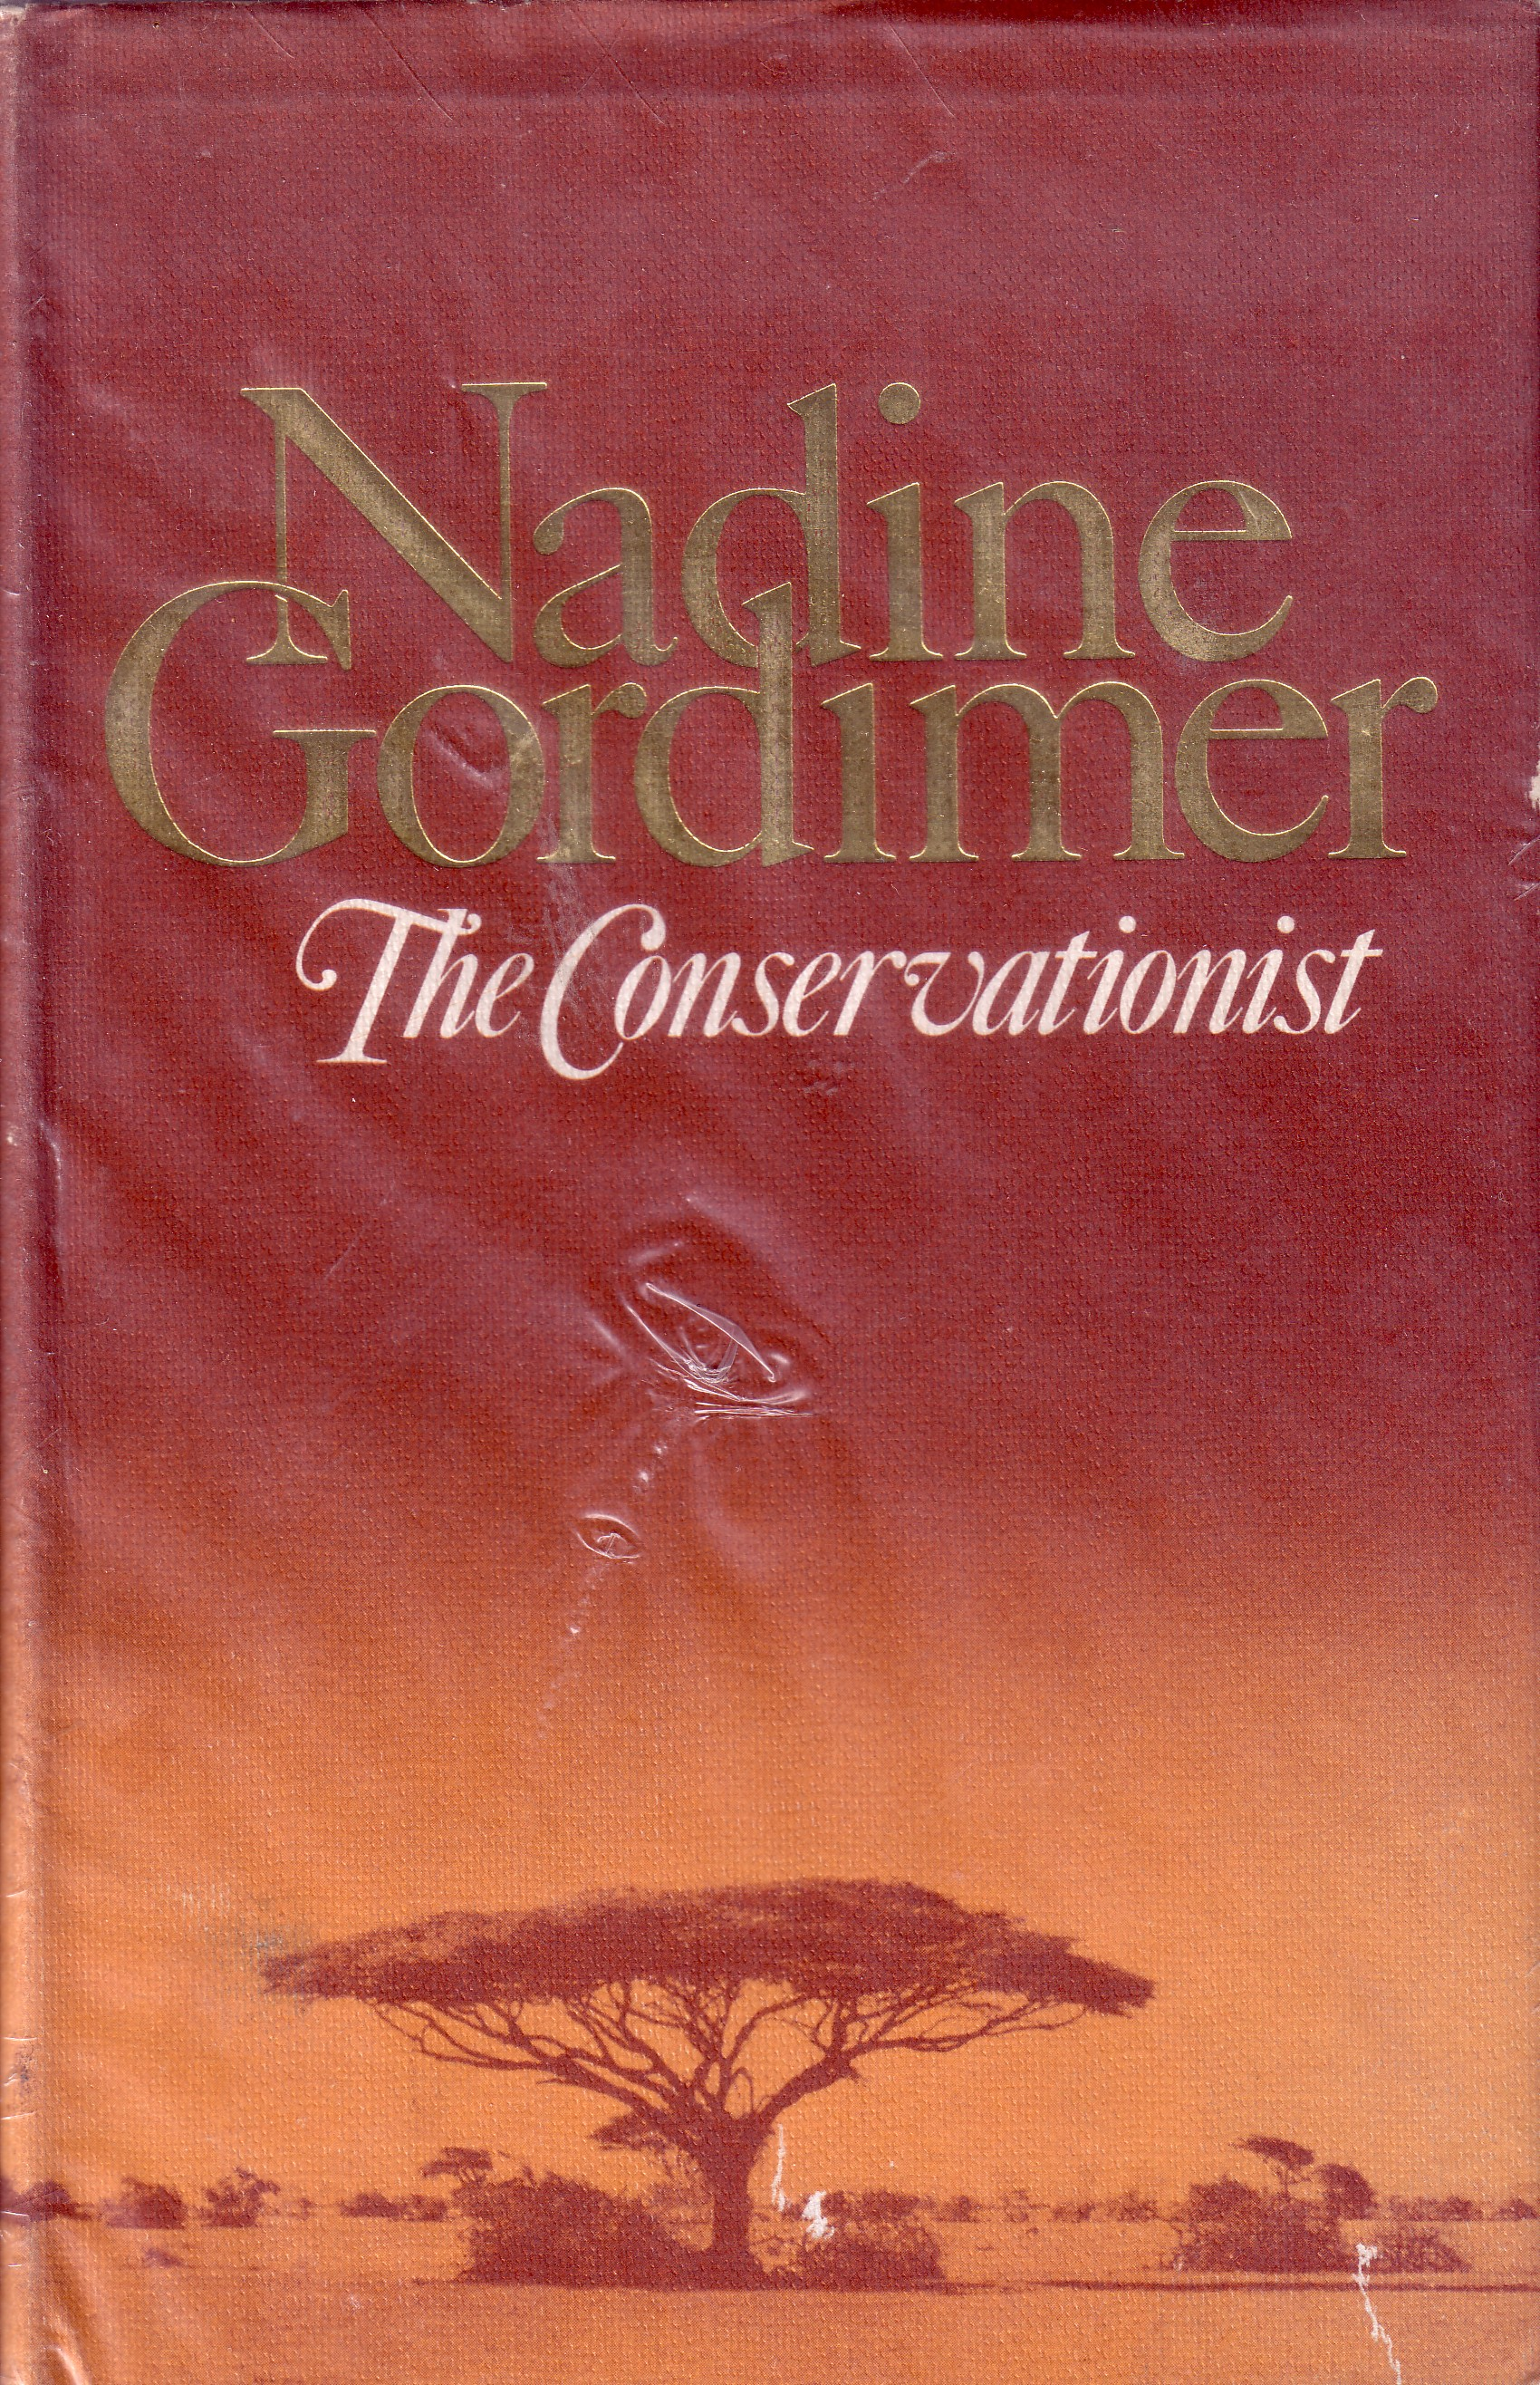 country lovers by nadine gordimer full text